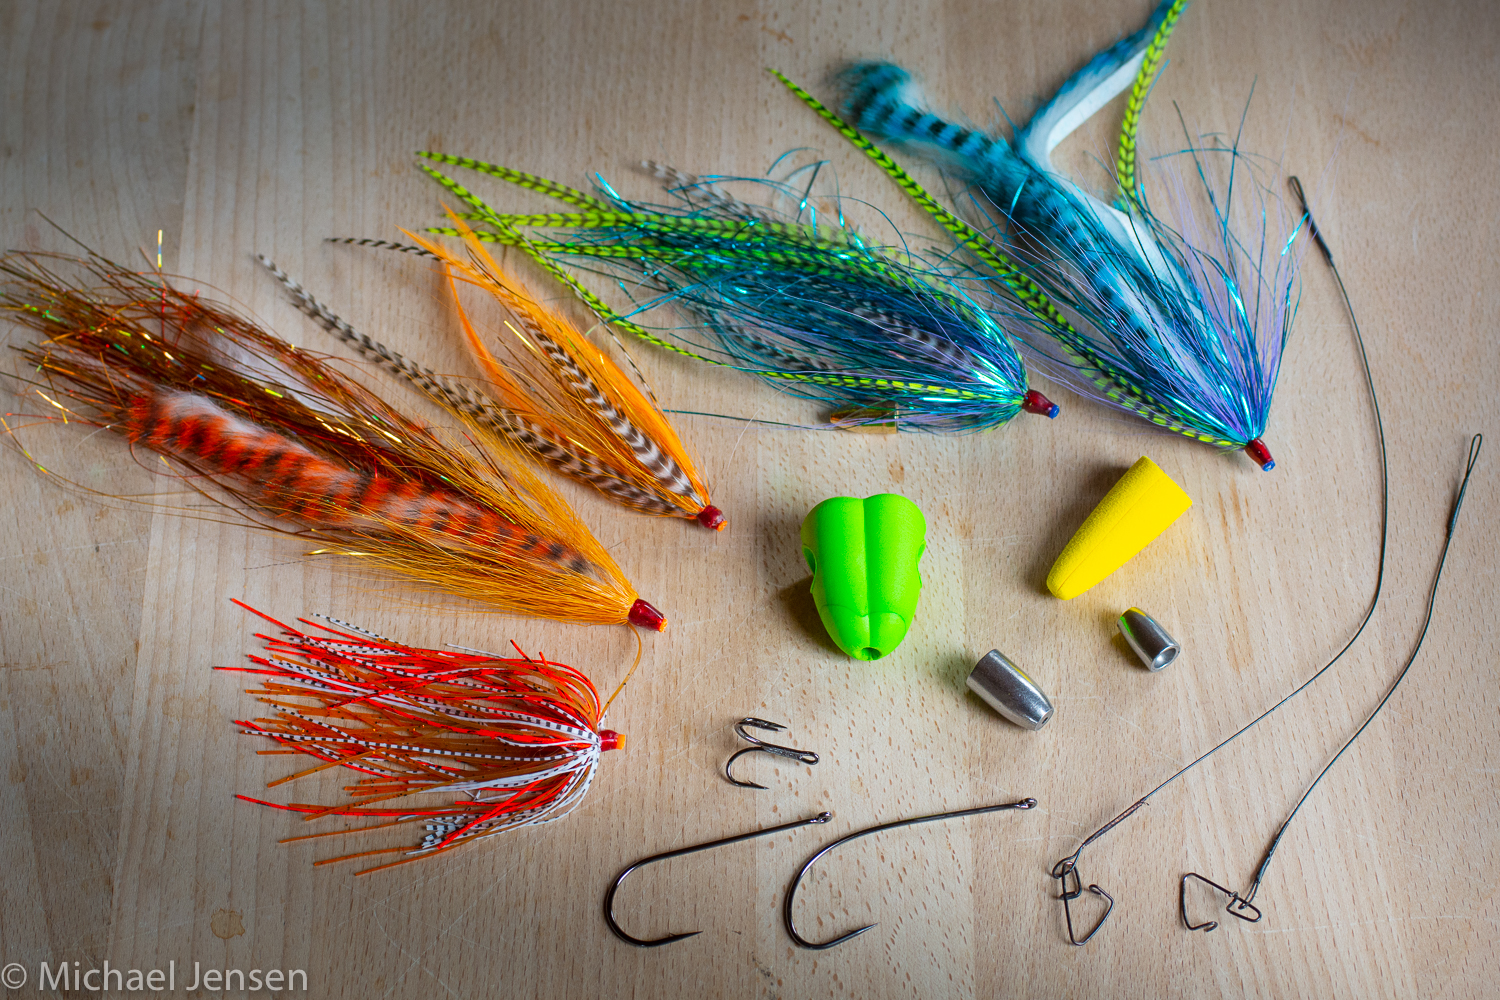 Spy Project - Spin Fly system for predator fishing - Michael